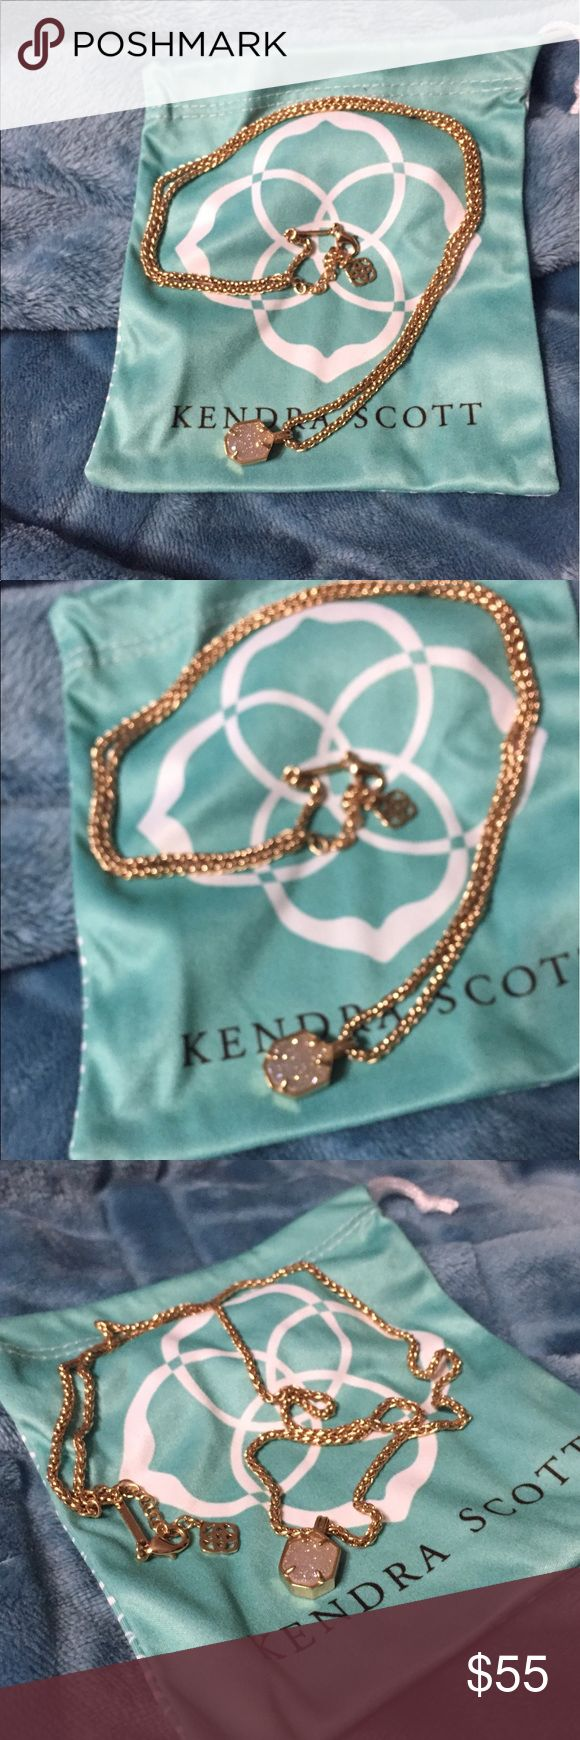 """Kendra Scott Drusy Oliver Necklace Kendra Scott Rose Gold Oliver Drusy Necklace. Purchased on here (worn twice). EUC. Necklace length max 28"""". Retail $75. Comes with dust bag Kendra Scott Jewelry Necklaces"""